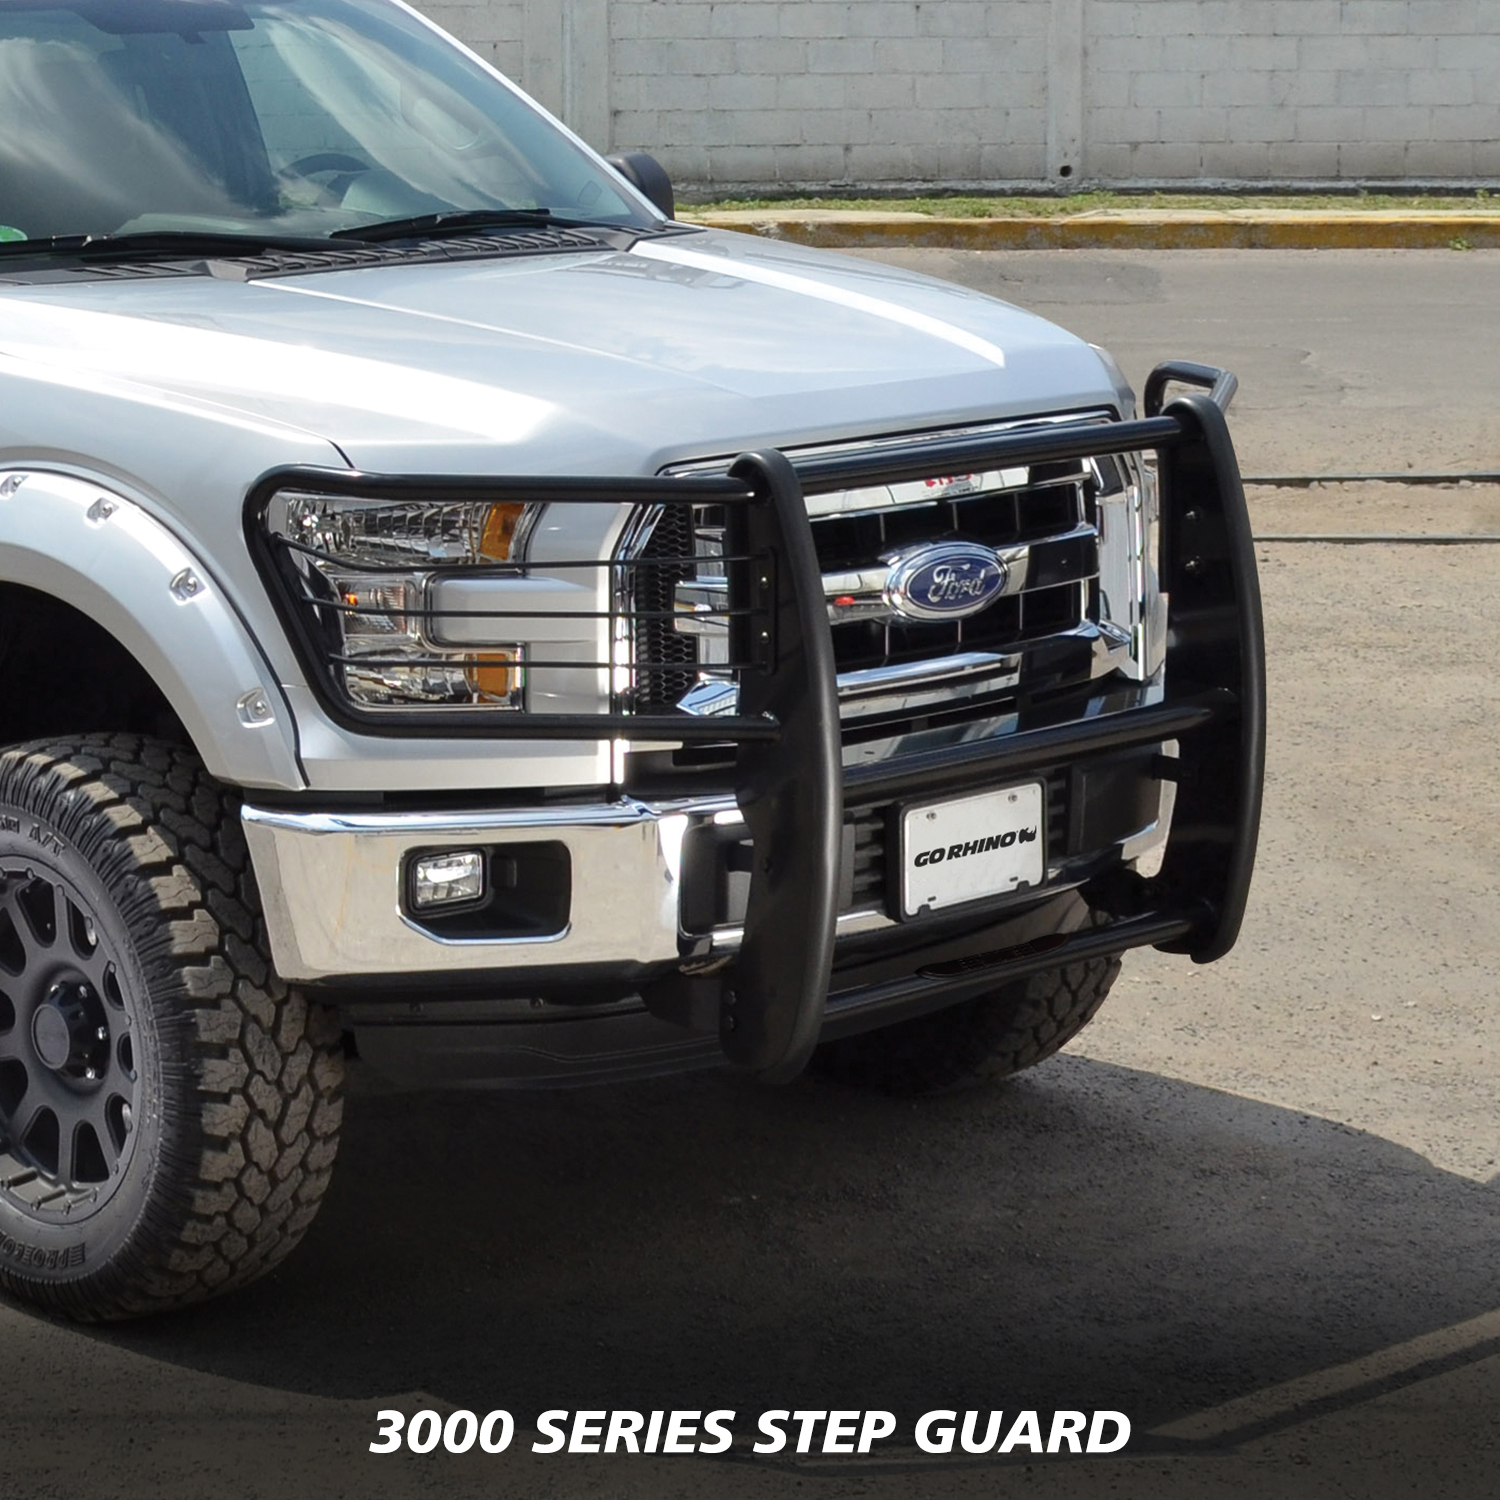 Go Rhino! 3153MB 3000 Series StepGuard Grille and Brush Guard